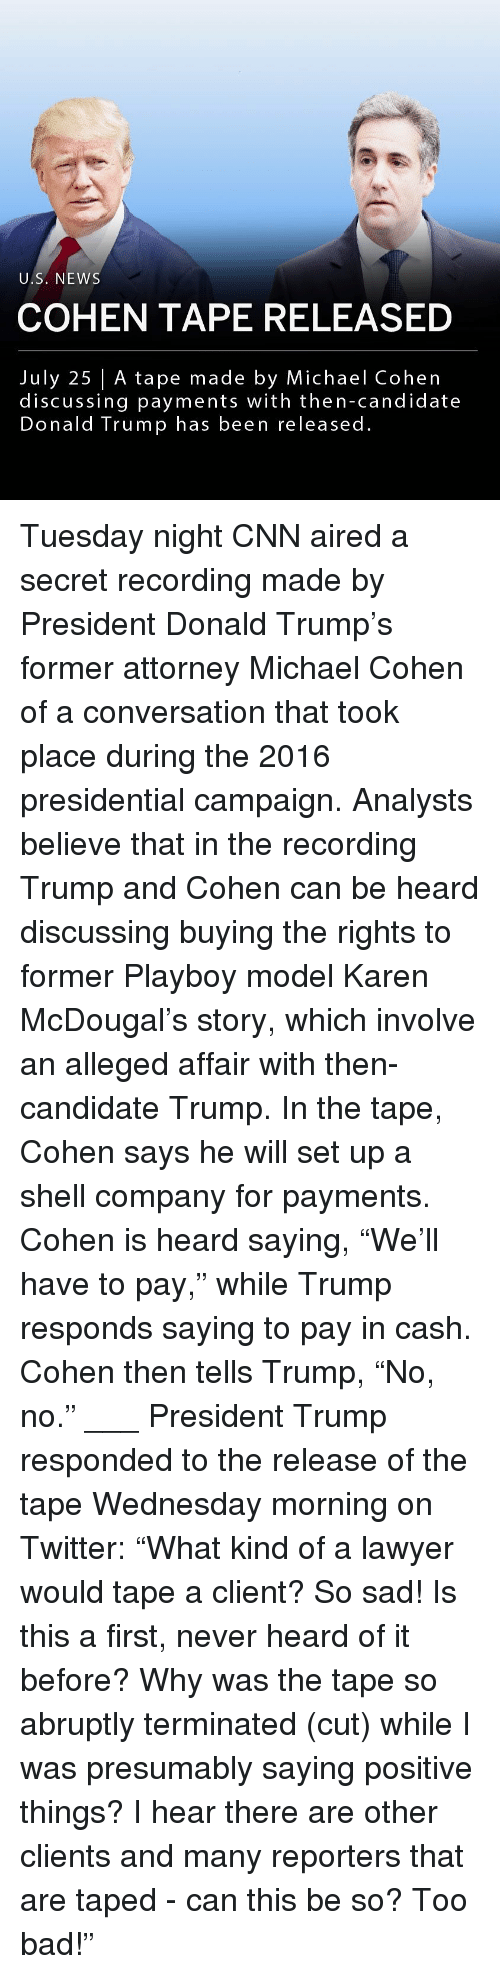 "Aired: U.S. NEWS  COHEN TAPE RELEASED  July 25 | A tape made by Michael Cohen  discussing payments with then-candidate  Donald Trump has been released. Tuesday night CNN aired a secret recording made by President Donald Trump's former attorney Michael Cohen of a conversation that took place during the 2016 presidential campaign. Analysts believe that in the recording Trump and Cohen can be heard discussing buying the rights to former Playboy model Karen McDougal's story, which involve an alleged affair with then-candidate Trump. In the tape, Cohen says he will set up a shell company for payments. Cohen is heard saying, ""We'll have to pay,"" while Trump responds saying to pay in cash. Cohen then tells Trump, ""No, no."" ___ President Trump responded to the release of the tape Wednesday morning on Twitter: ""What kind of a lawyer would tape a client? So sad! Is this a first, never heard of it before? Why was the tape so abruptly terminated (cut) while I was presumably saying positive things? I hear there are other clients and many reporters that are taped - can this be so? Too bad!"""